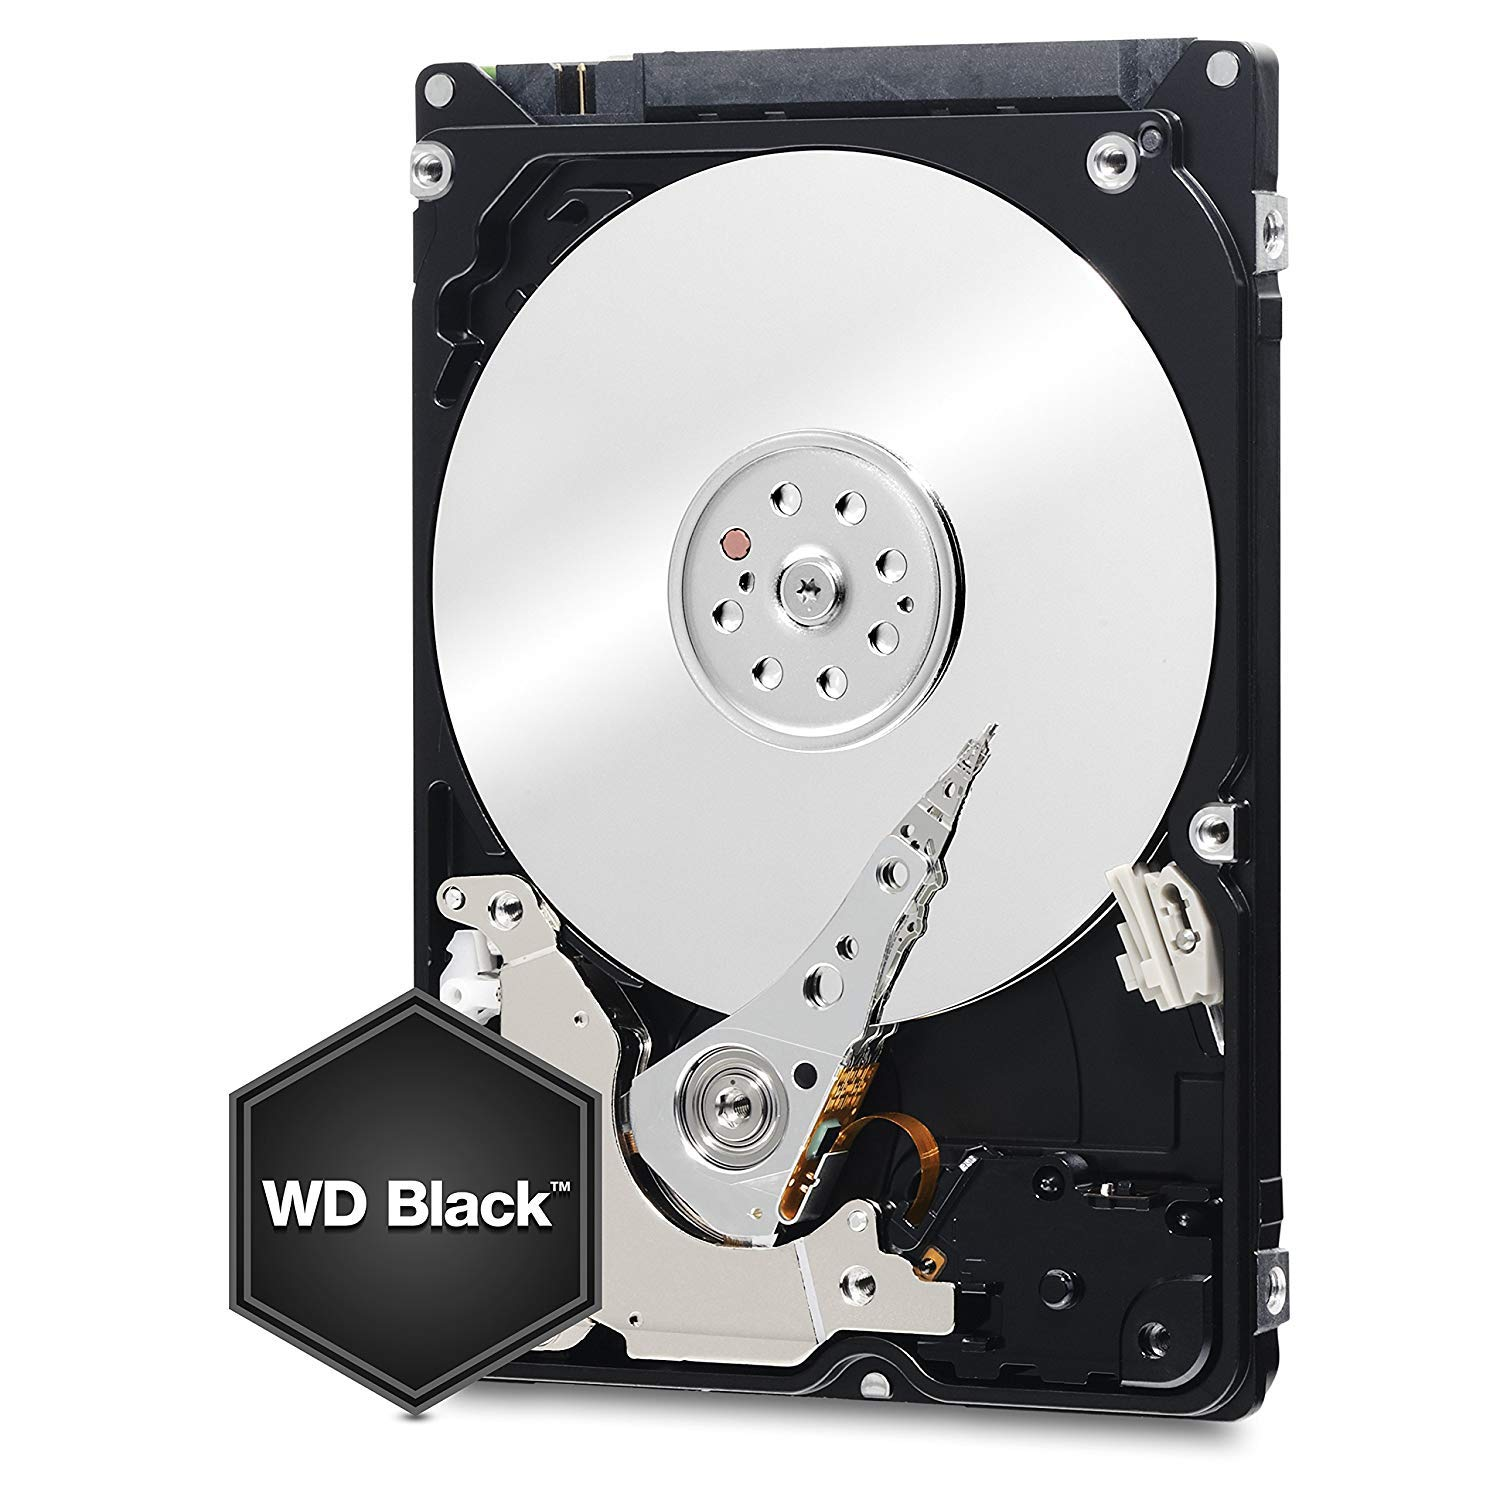 WD Black 1TB Performance Mobile Hard Disk Drive - 7200 RPM SATA 6 Gb/s 32MB Cache 9.5 MM 2.5 Inch - WD10JPLX by Western Digital (Image #5)